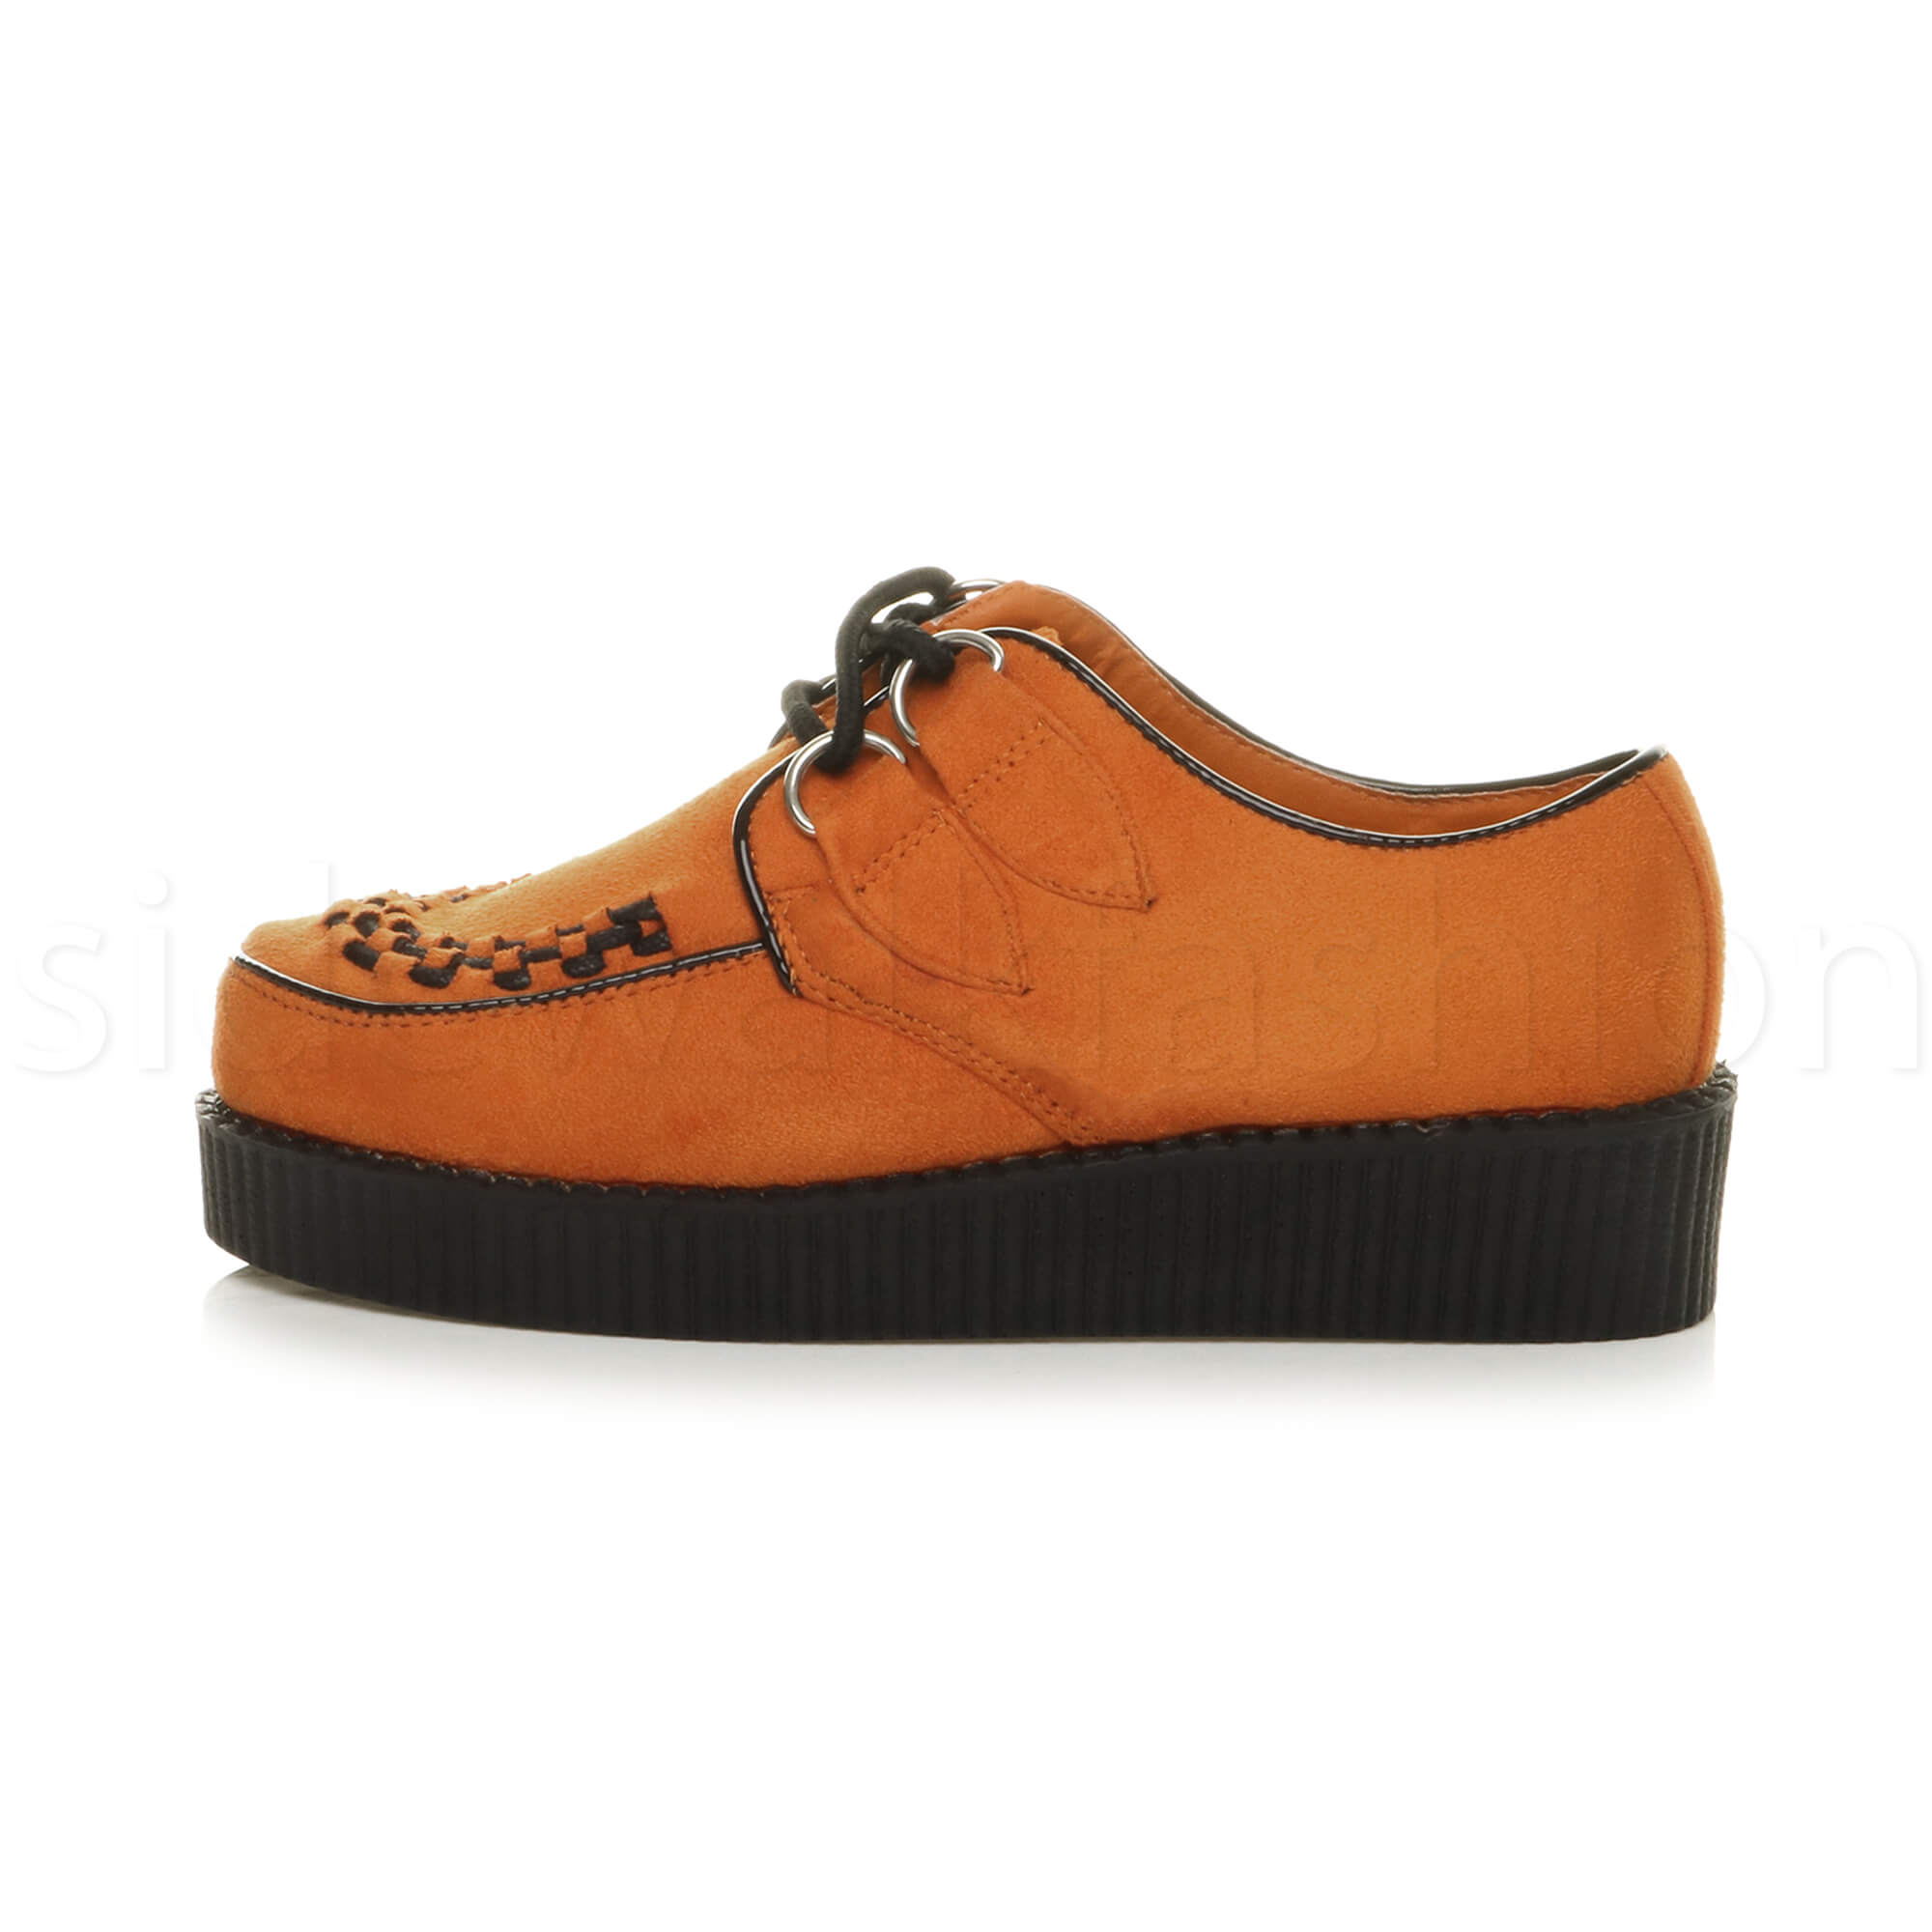 Womens-ladies-flat-platform-wedge-lace-up-goth-punk-creepers-shoes-boots-size miniatuur 49